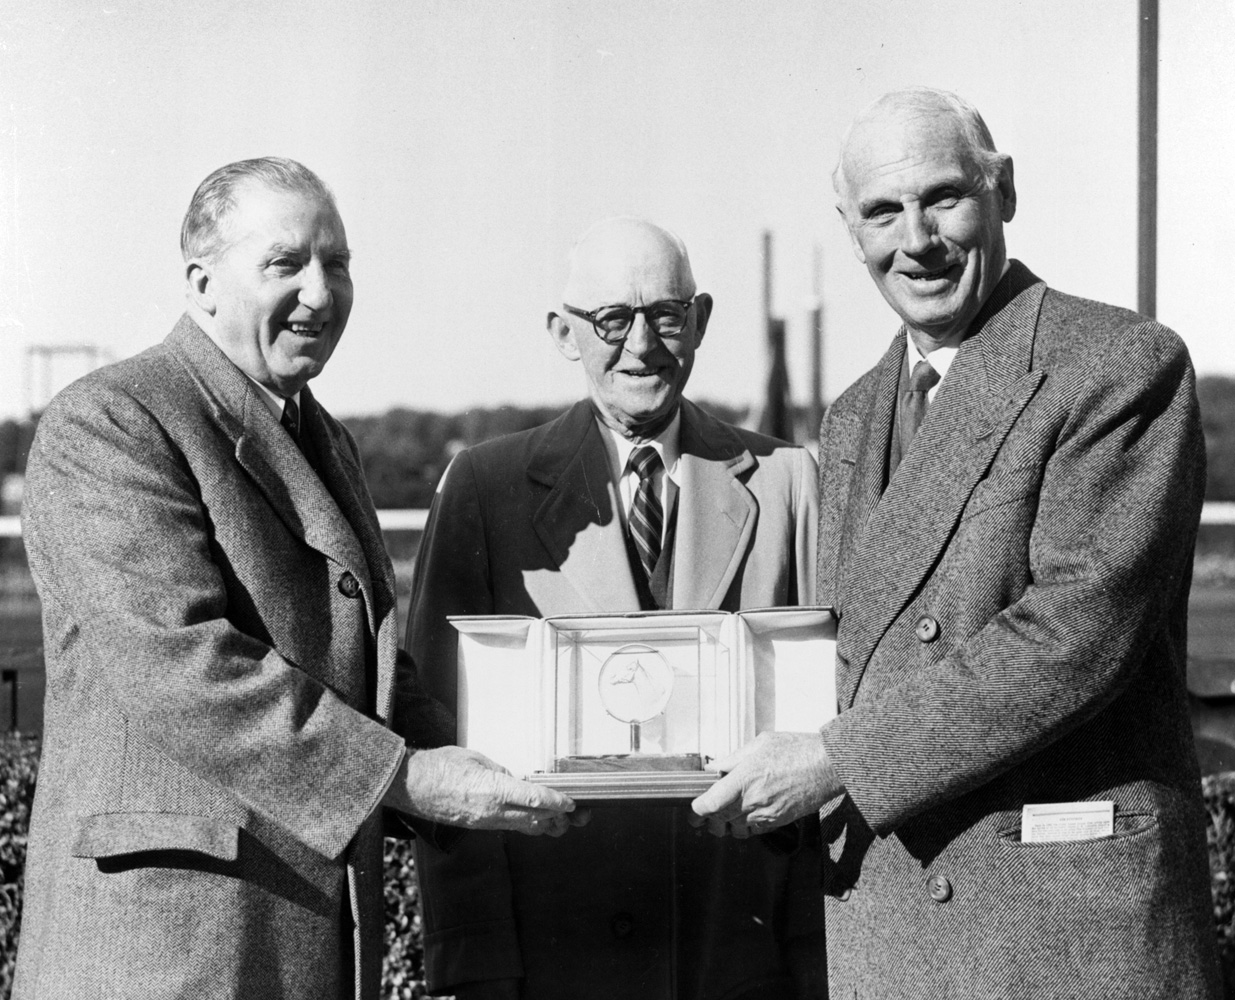 John W. Hanes, W. F. Bert Mulholland, and George D. Widener, Jr. at the trophy presentation for the 1957 Belmont Futurity, won by Jester (Keeneland Library Morgan Collection)